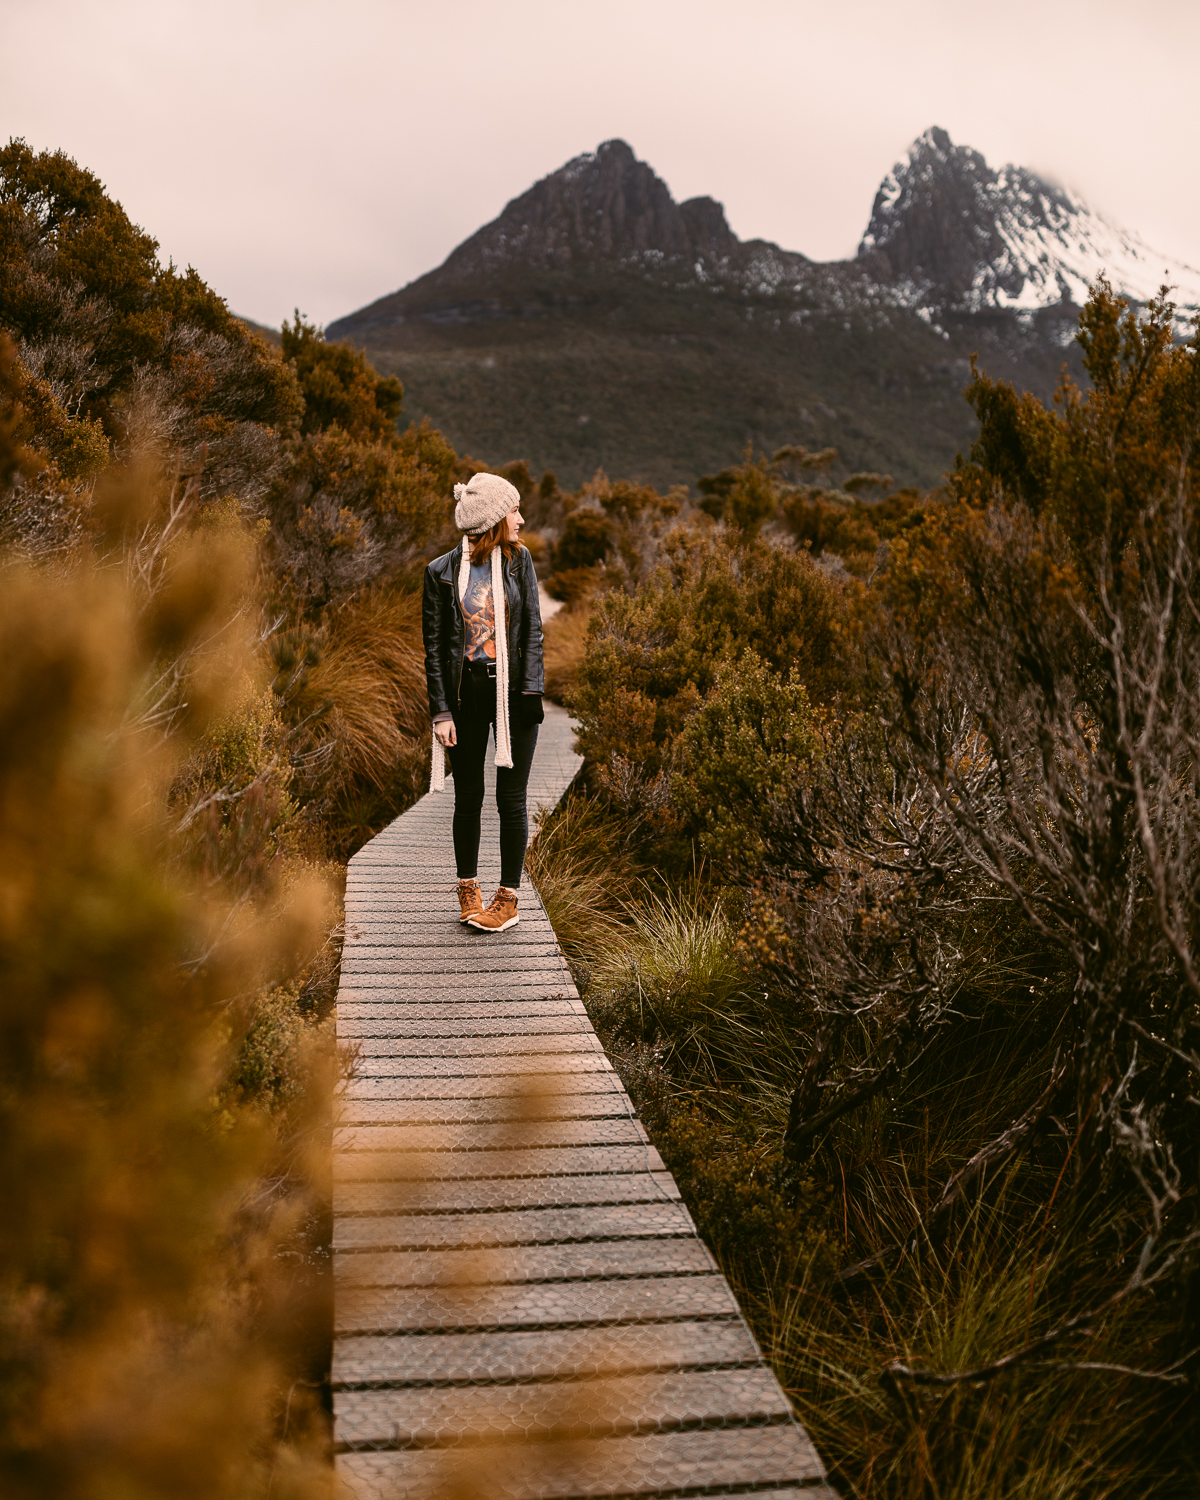 Melissa-Findley-CradleMountain-Leeshy-1.jpg